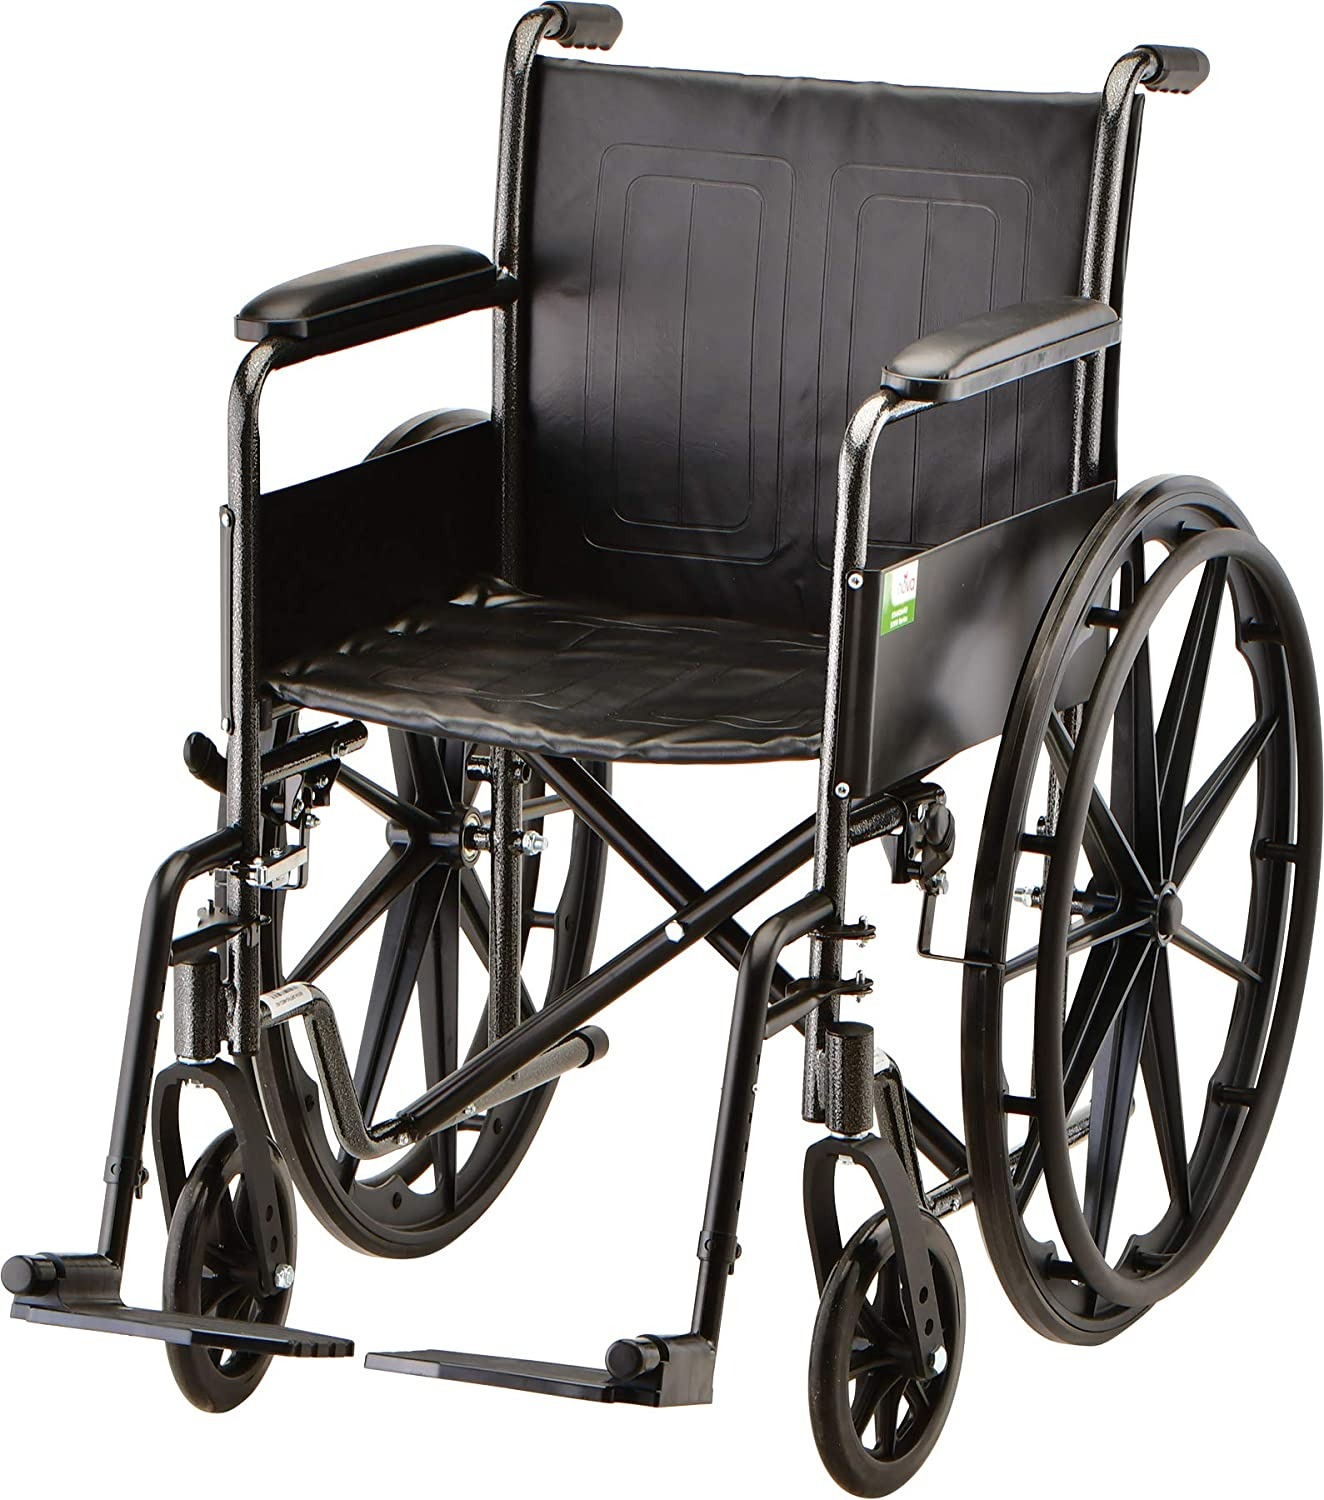 "B0016JDBZU NOVA 18"" Steel Wheelchair with Fixed Arms & Footrests 81Sx0ryKRuL"